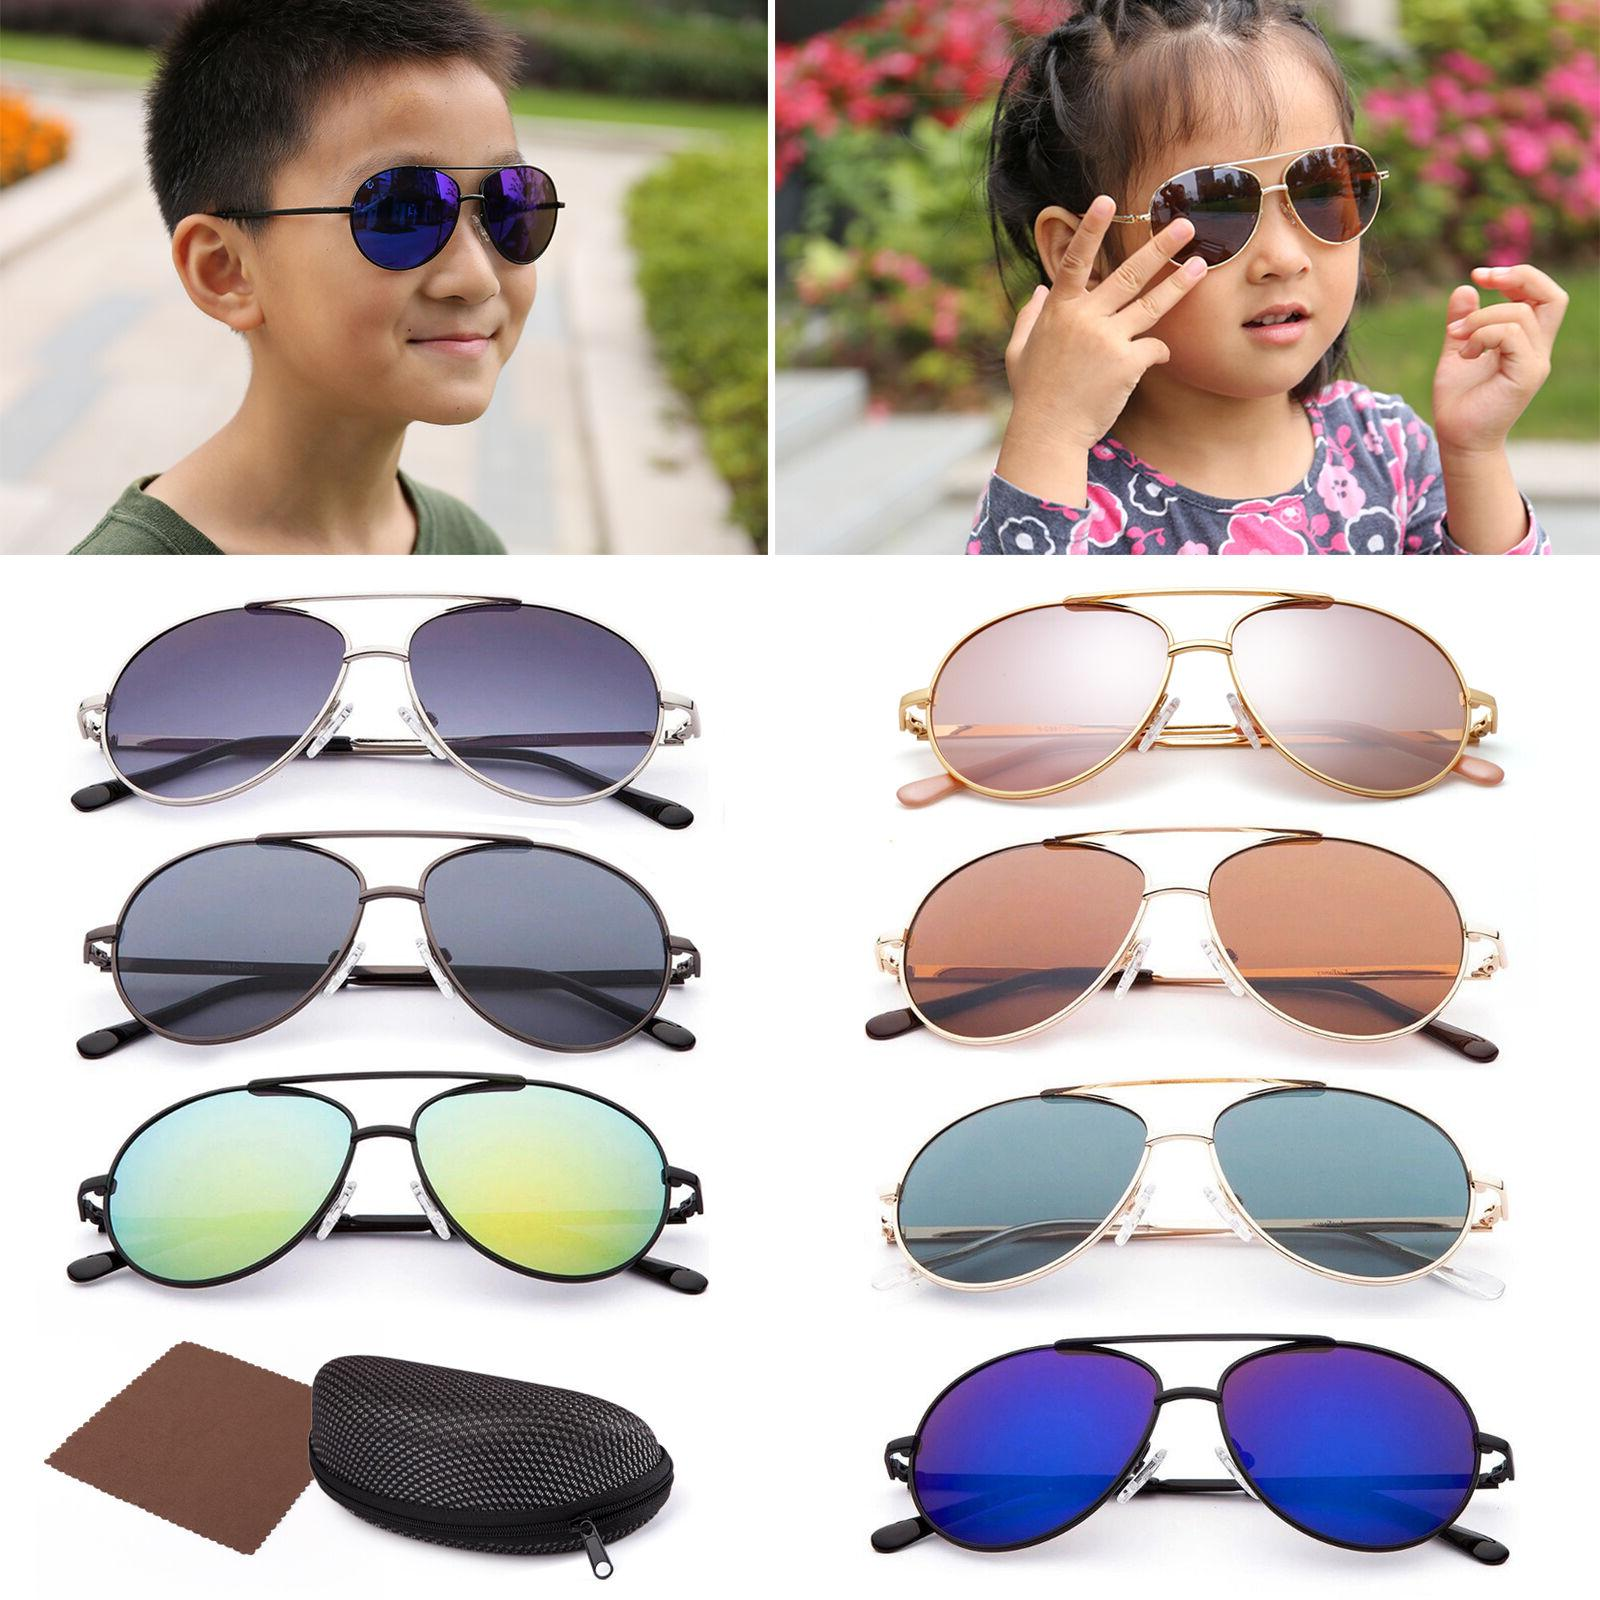 vintage aviator sunglasses for boys girls kids